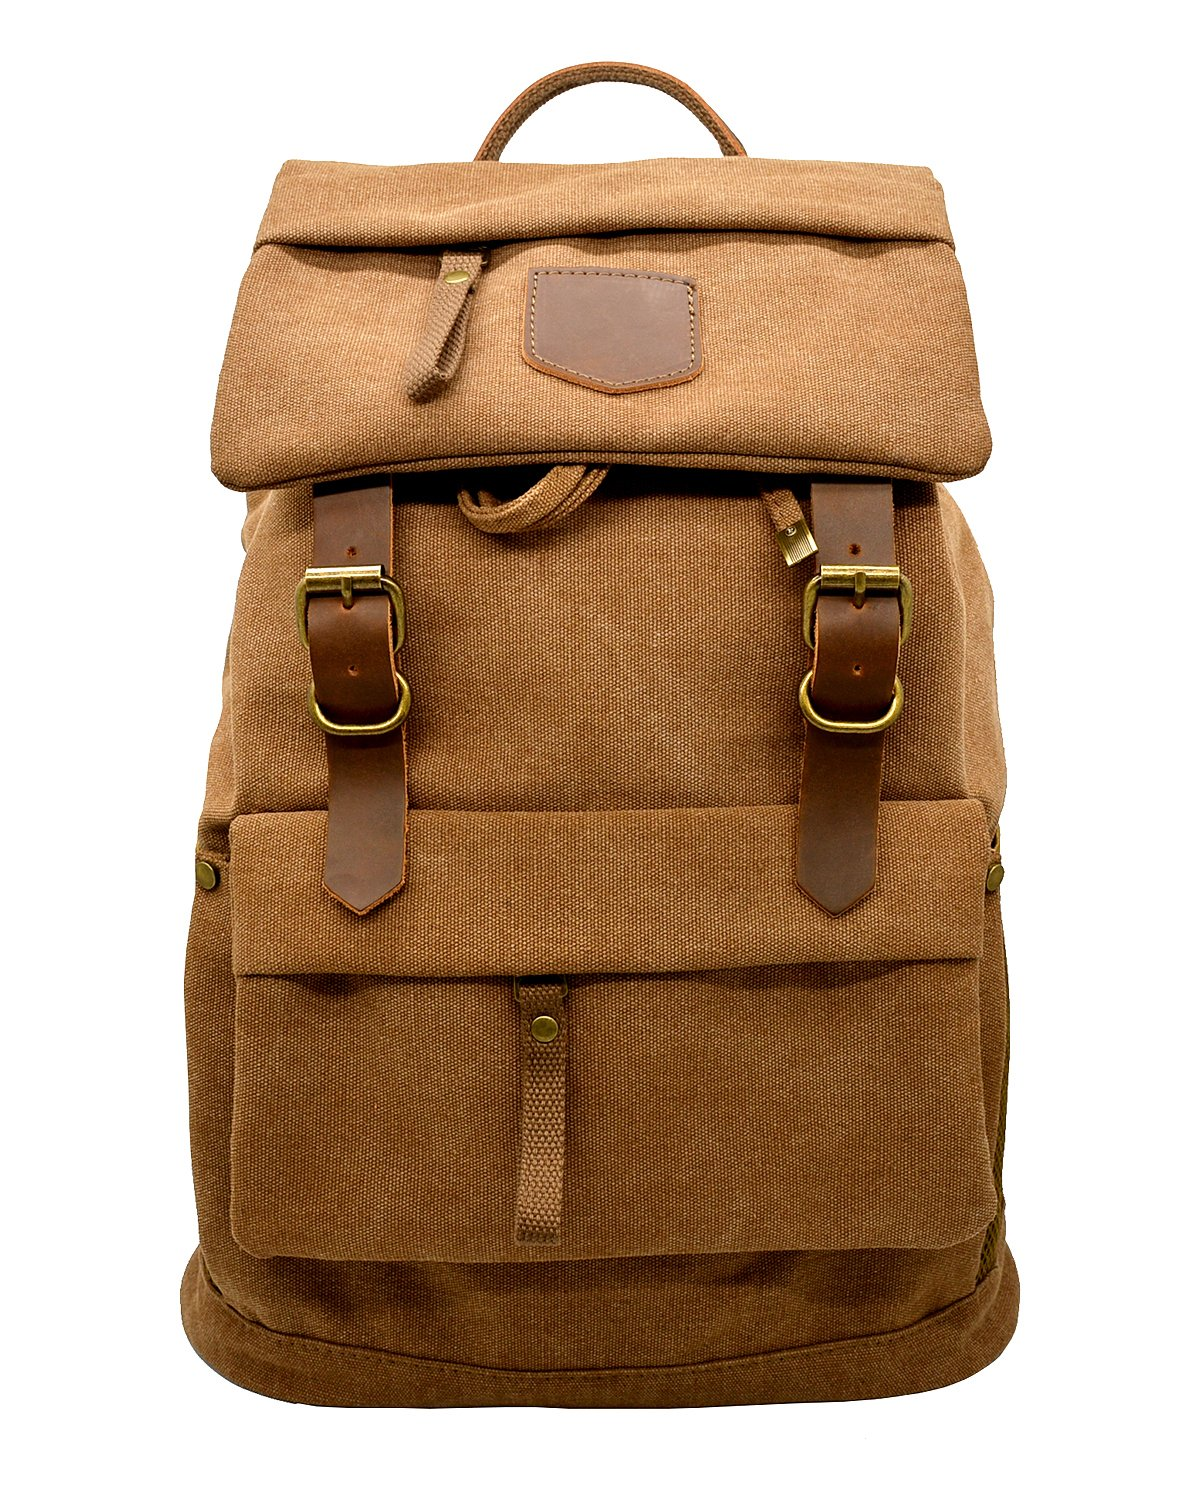 Canvas Vintage Leather Backpack - Unisex Casual Travel Rucksack Satchel, Larger Multipurpose Hiking Daypack, Outdoor Climbing Mountaineering Bag for Men and Women